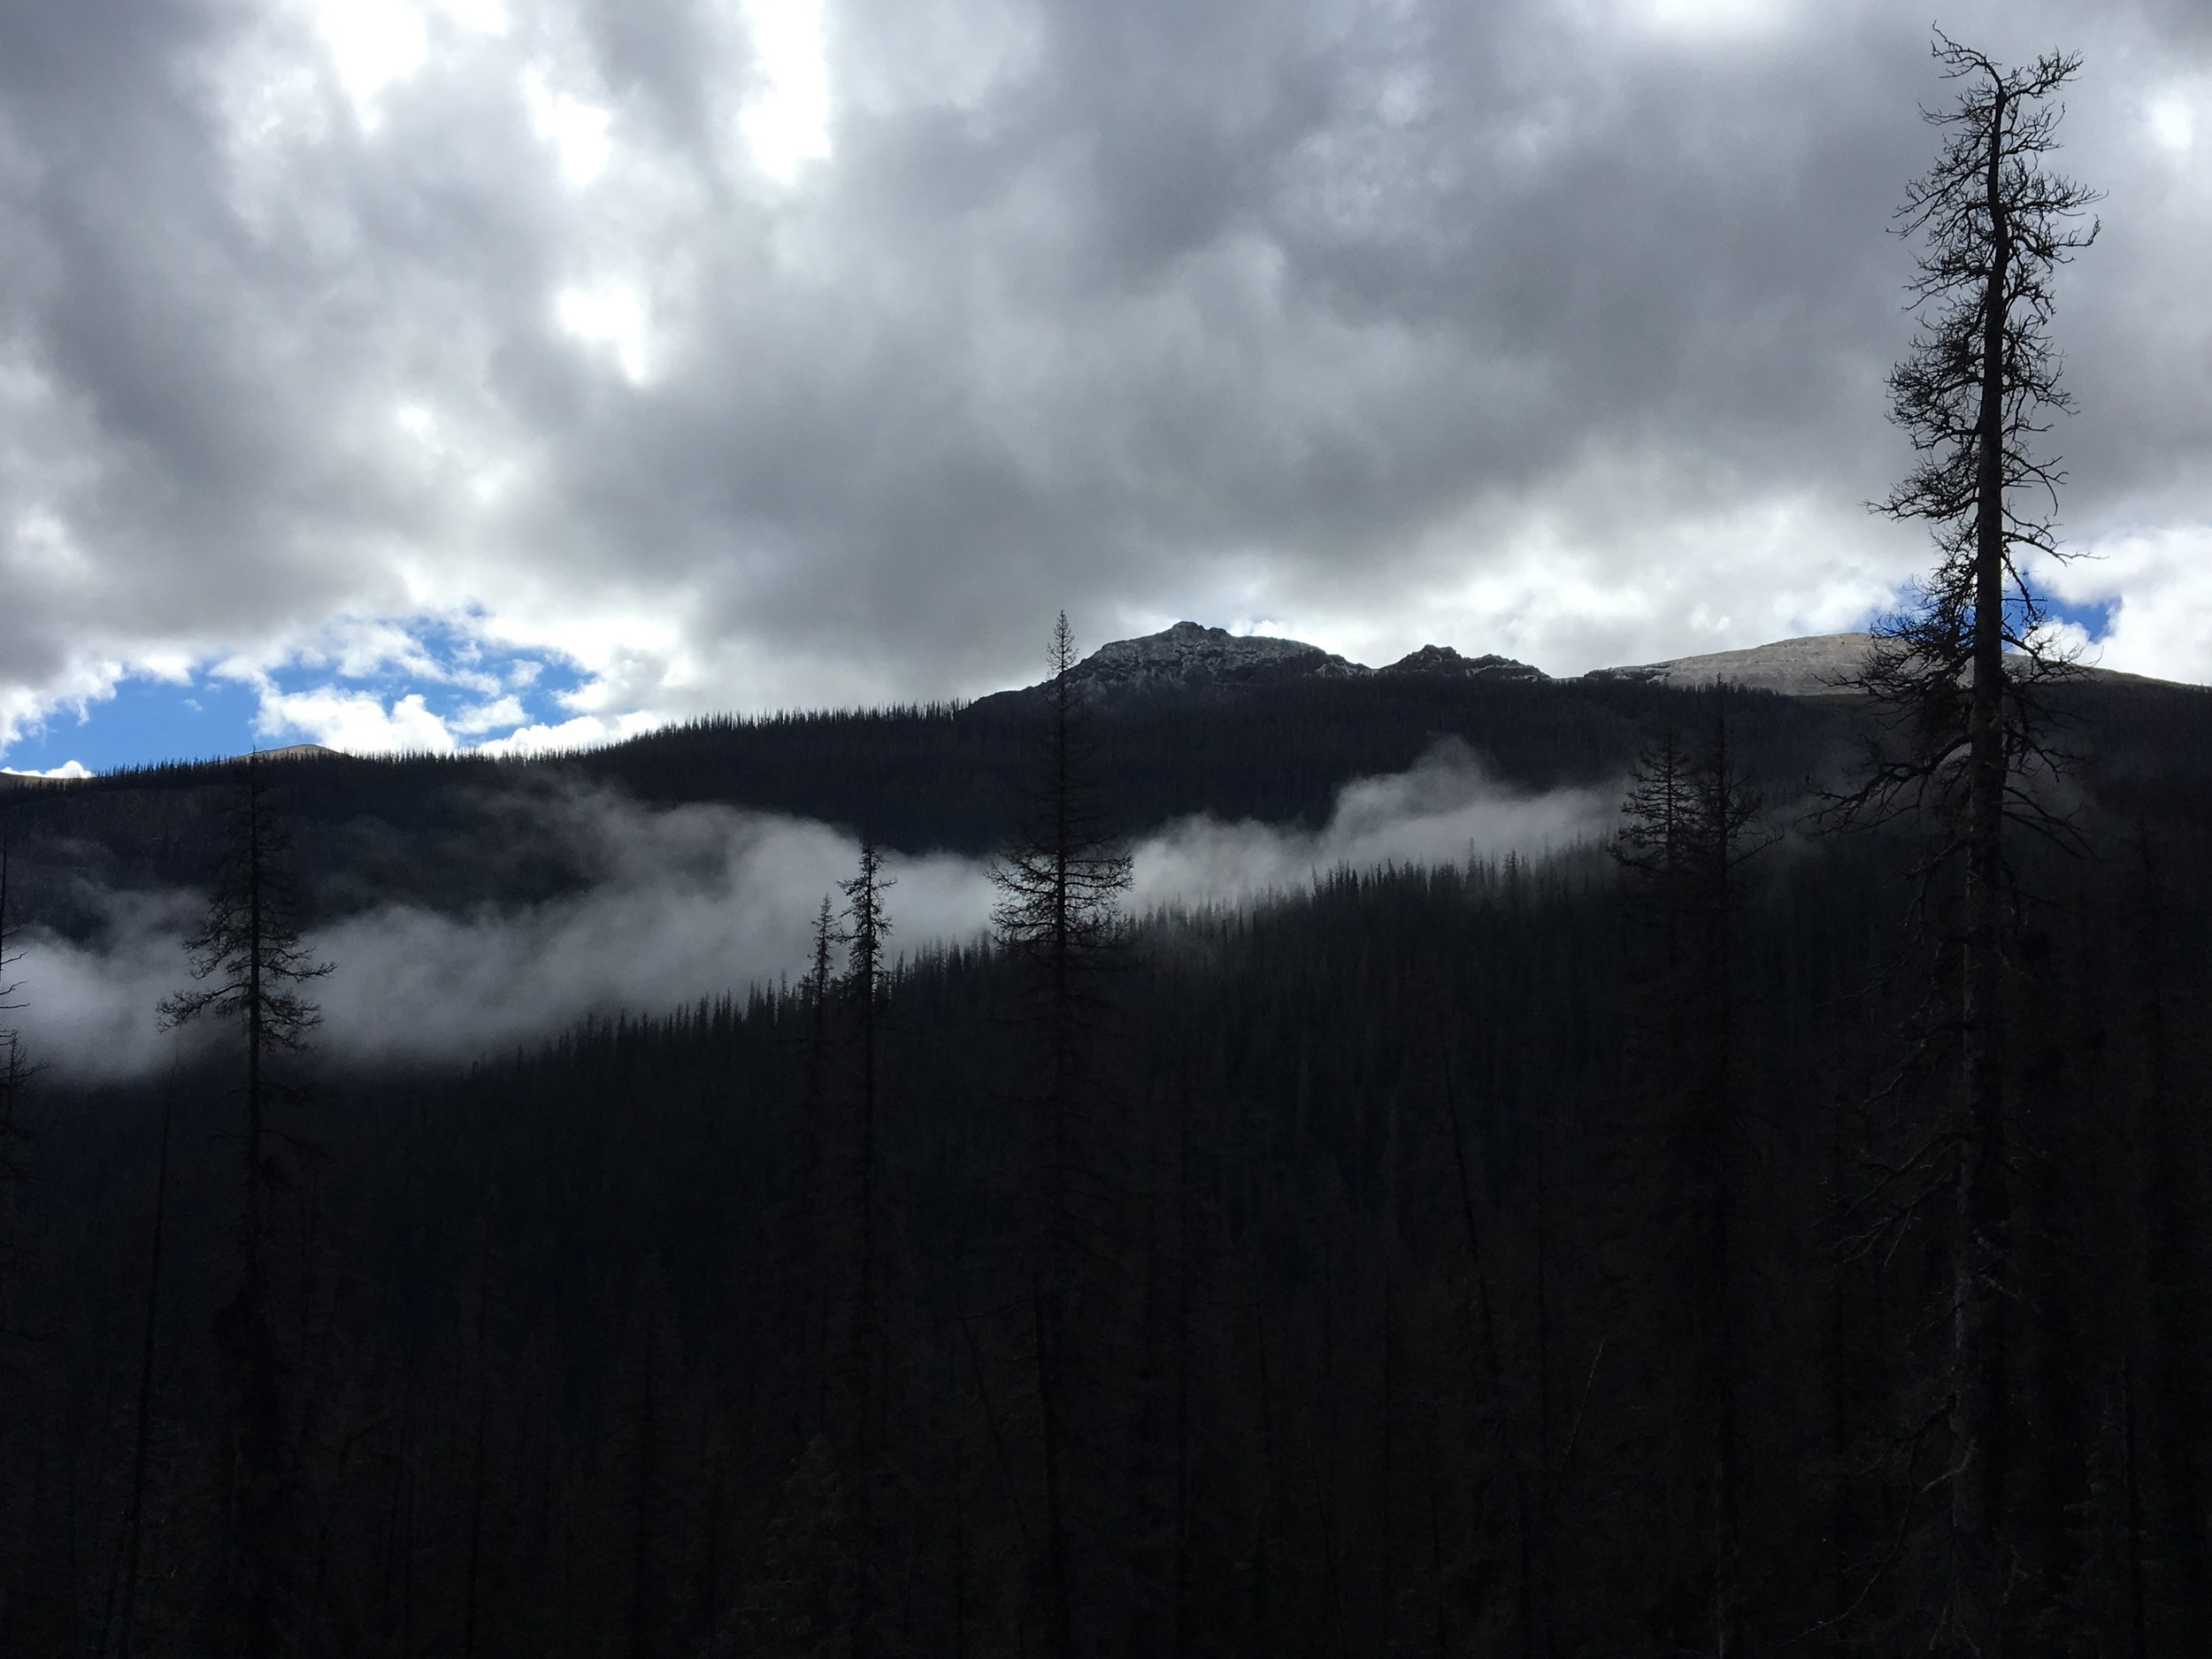 Photo taken at 7 AM on a backpacking excursion in Southwestern Colorado